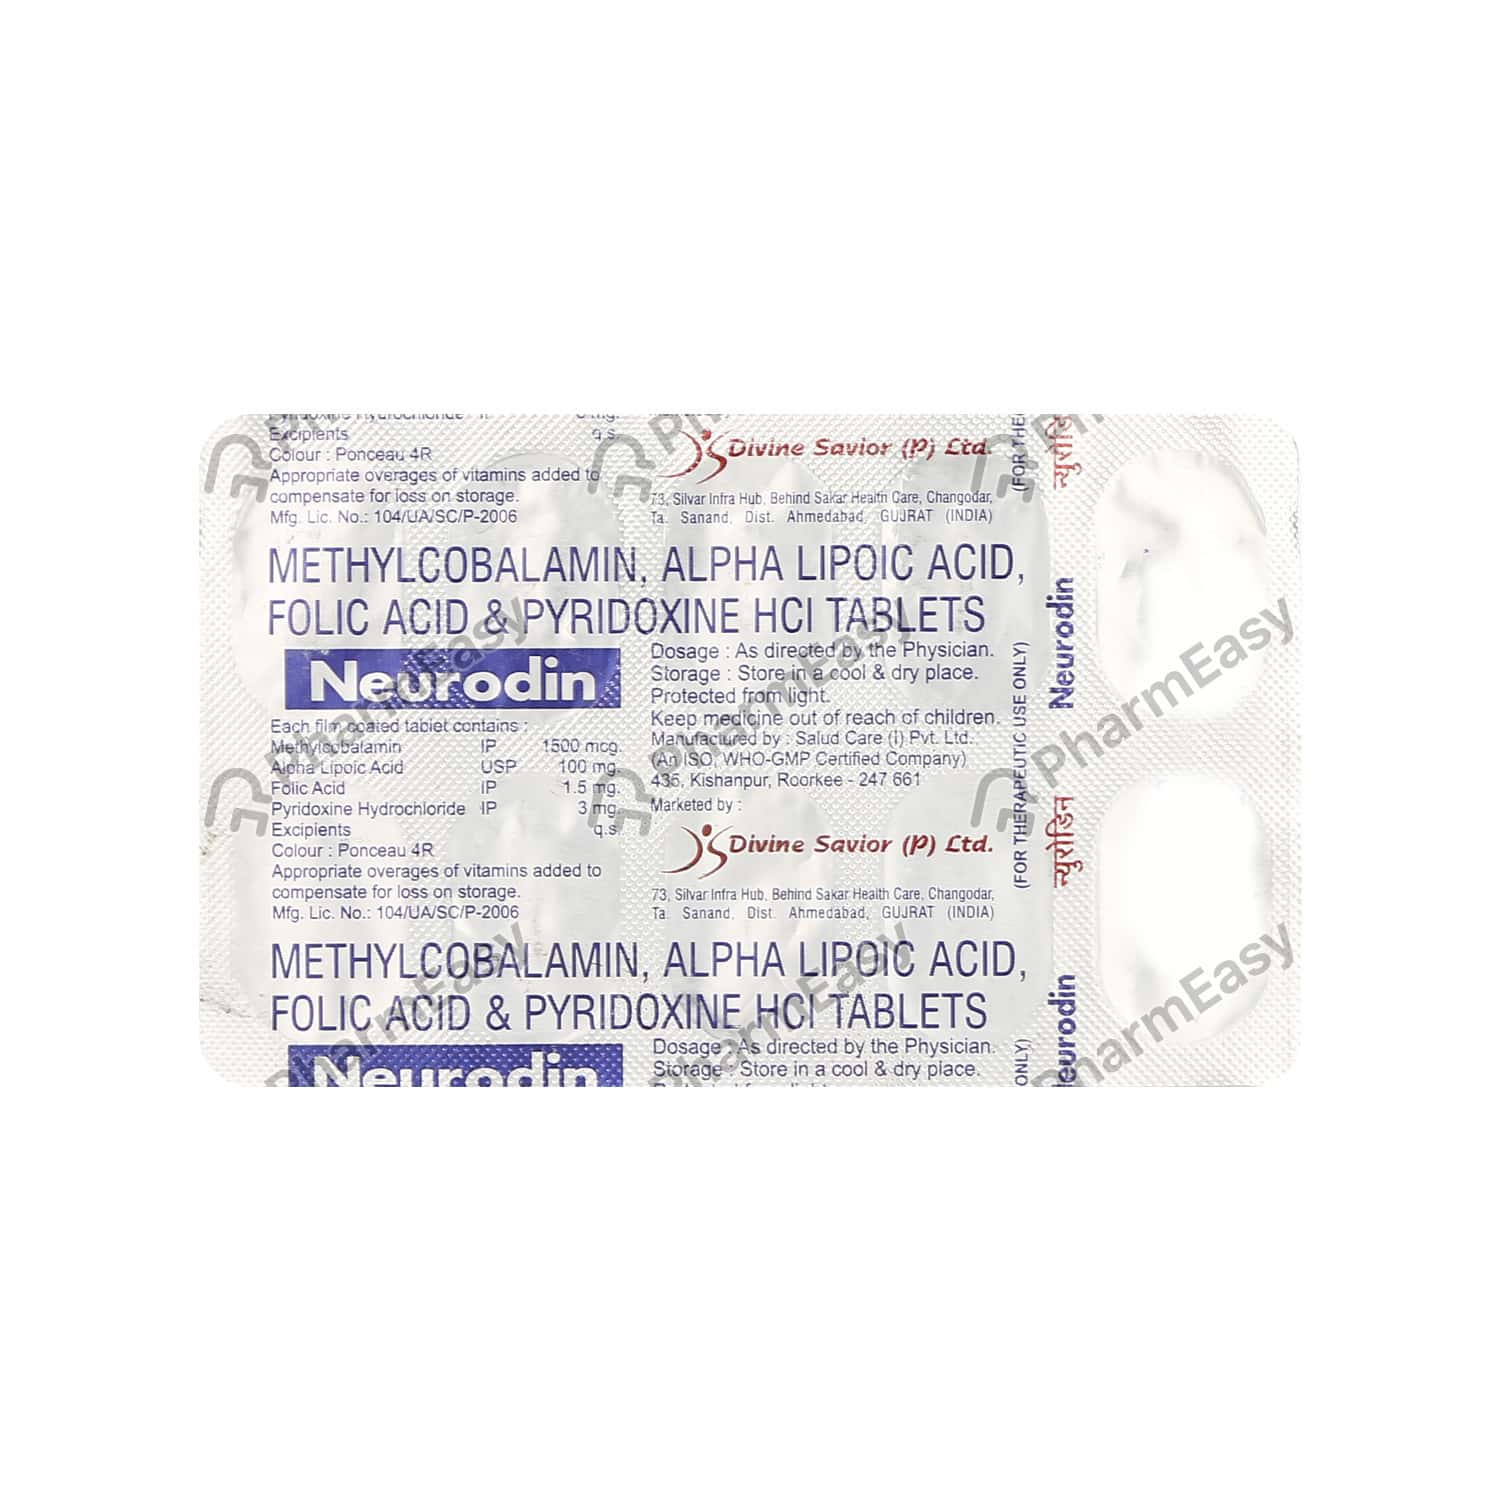 Neurodin Tablet